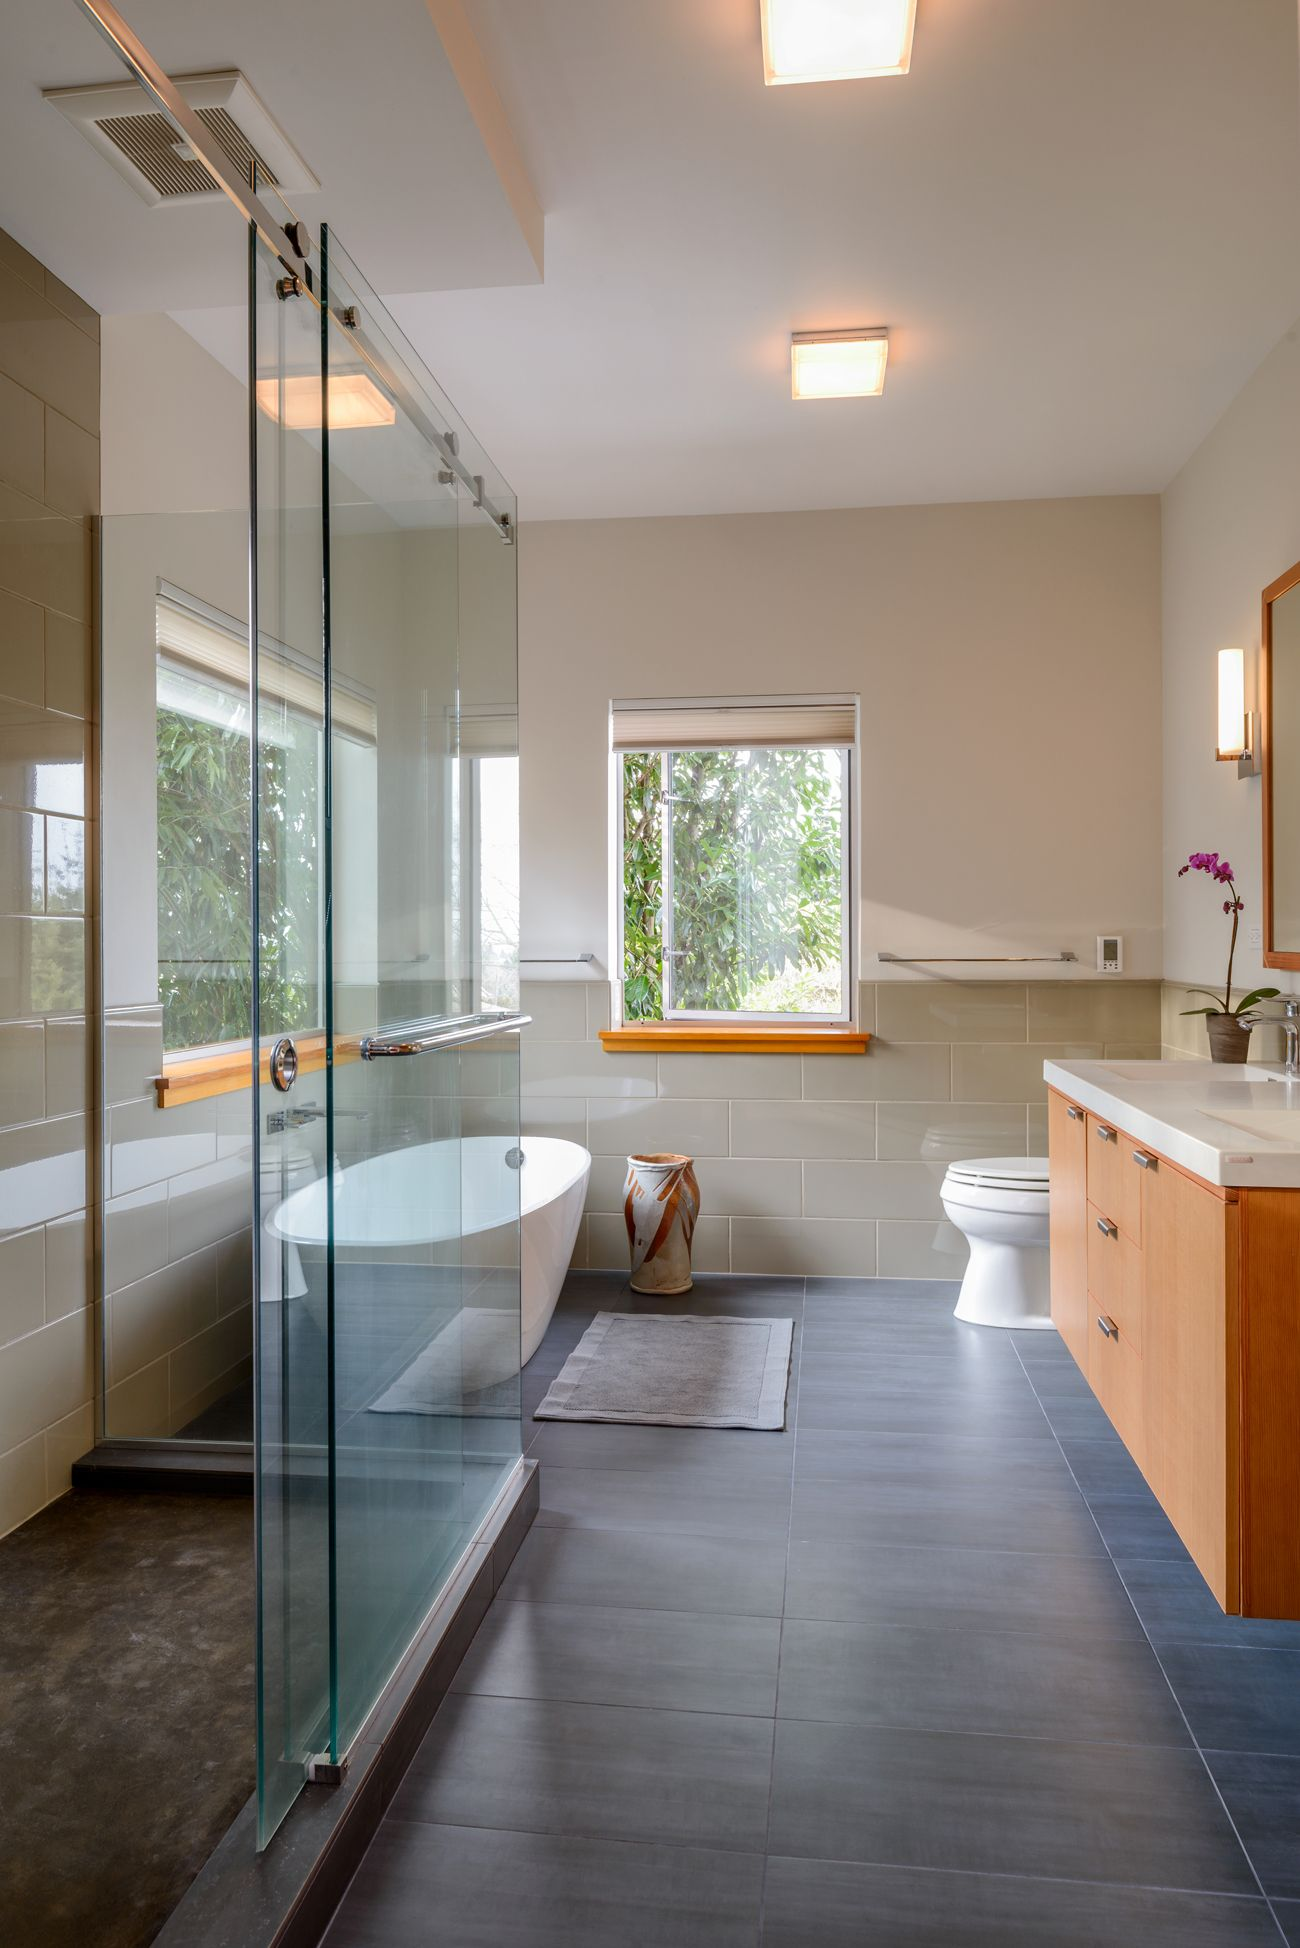 Seward Park Bathroom Remodel | Seattle | Modern Bathroom | Floating Tub |  Wood Window Sills